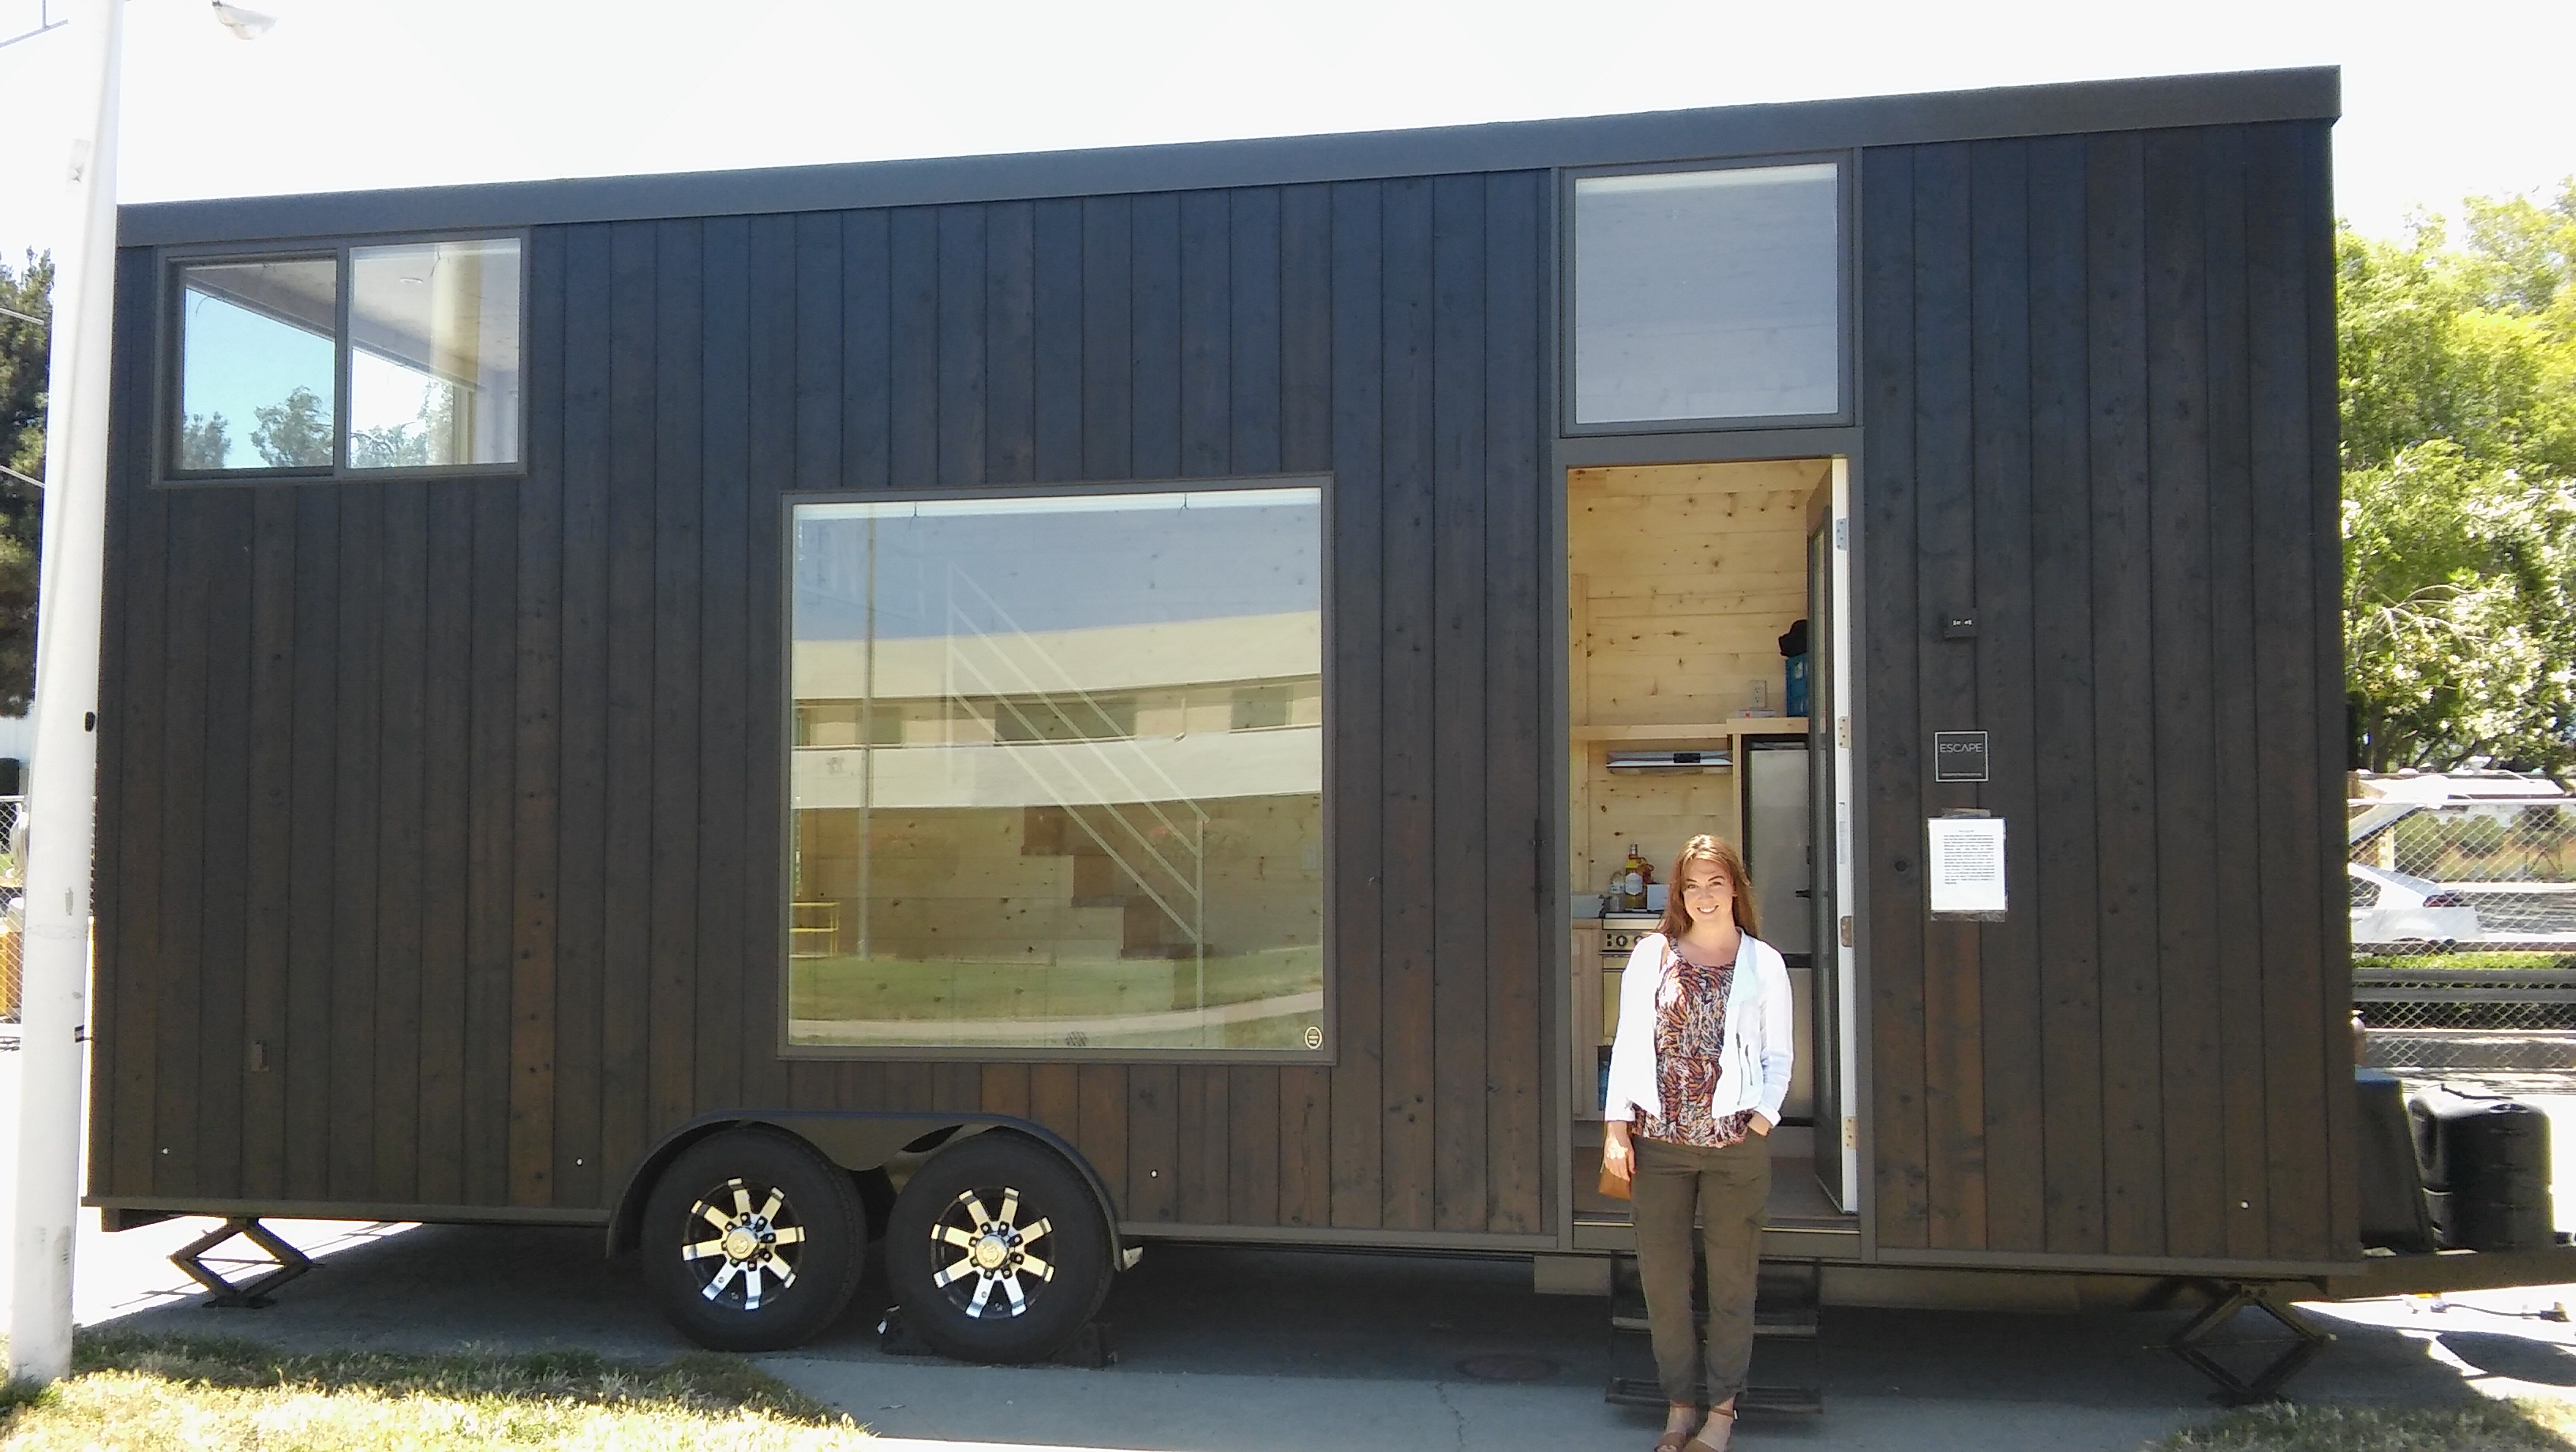 Tiny Houses | Delta Bay on cabin house designs, united states house designs, rv house signs, elf house designs, cottage house designs, rv interior design,